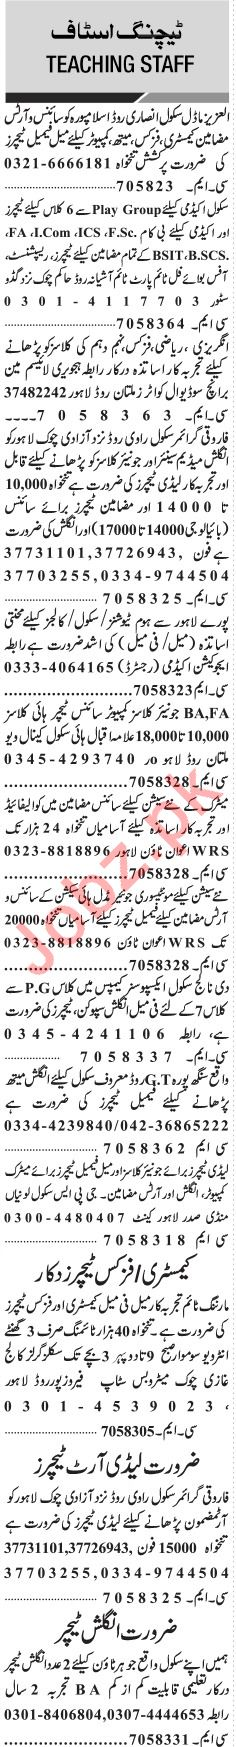 Jang Sunday Classified Ads 30th Dec 2018 for Teaching Staff